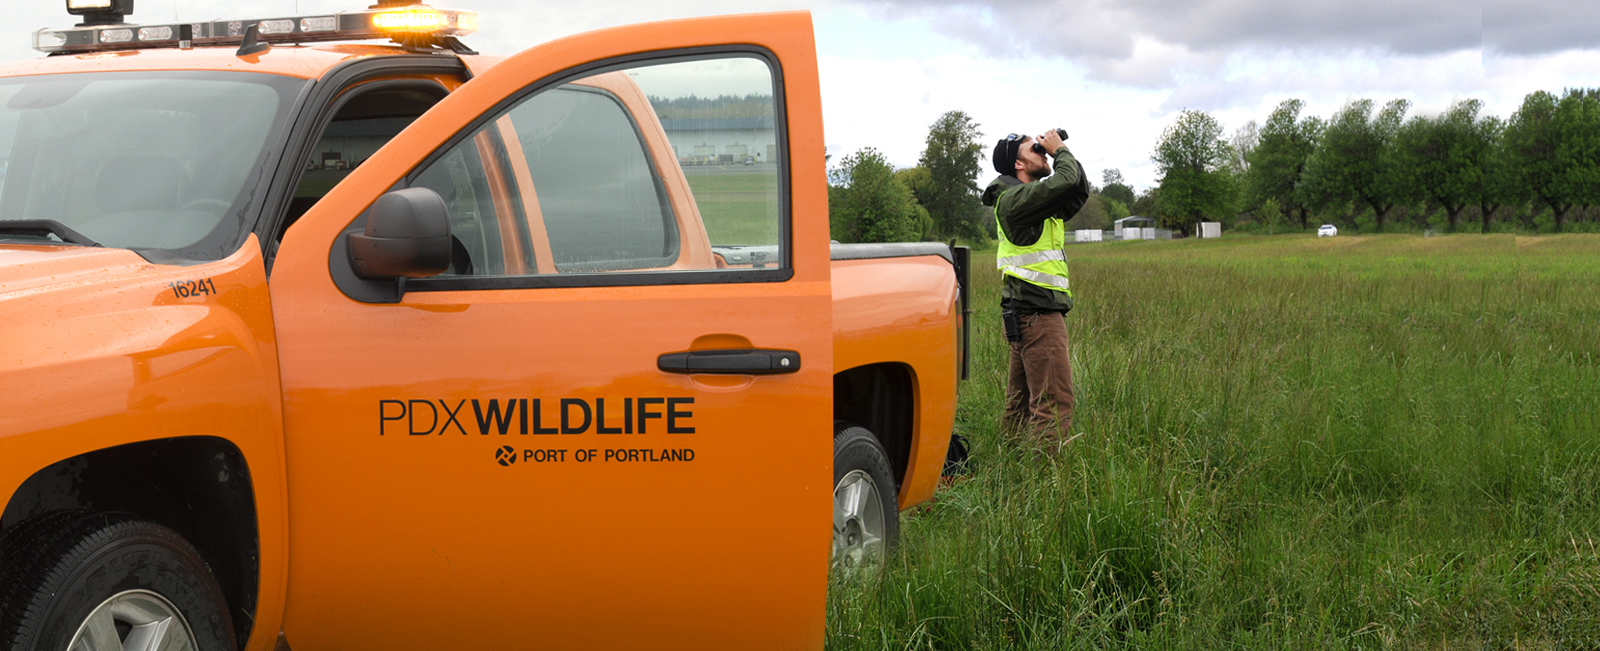 PDX Wildlife Team keeps passengers safe